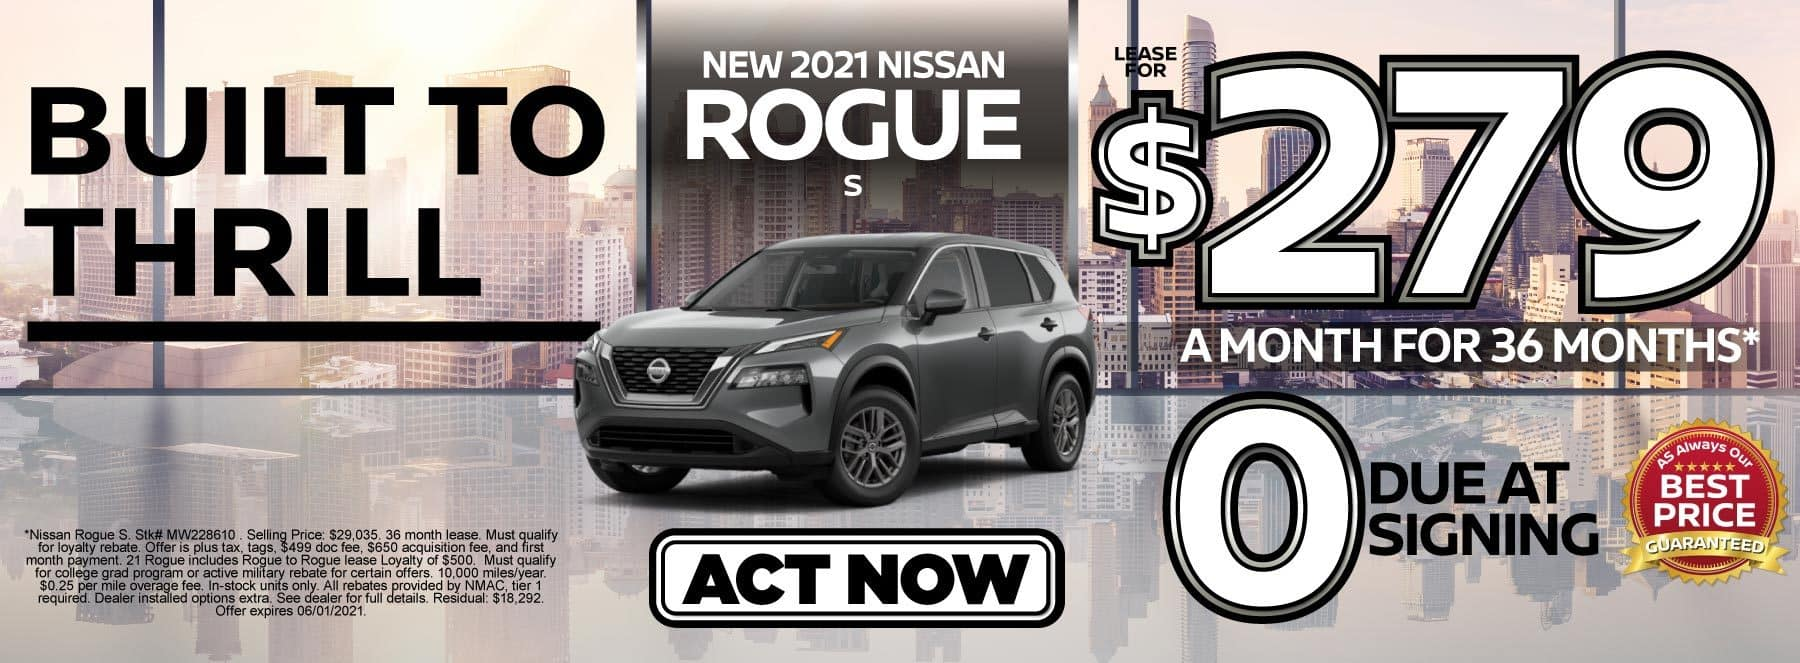 New 2021 Nissan Rogue S lease for $279 a month | Act Now